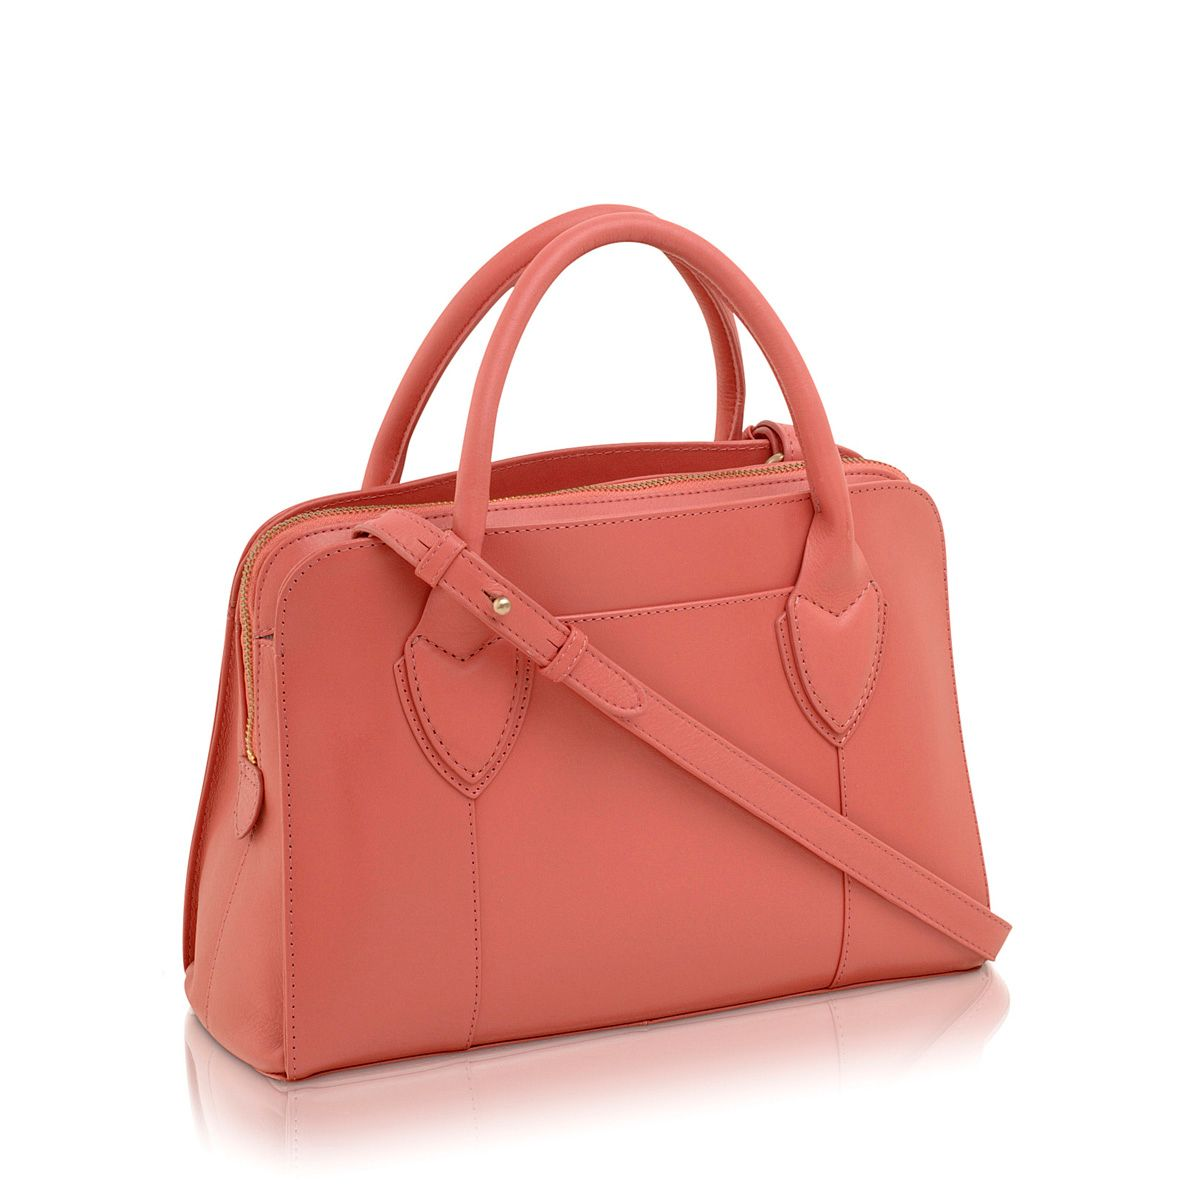 Aldgate coral crossbody leather medium tote bag